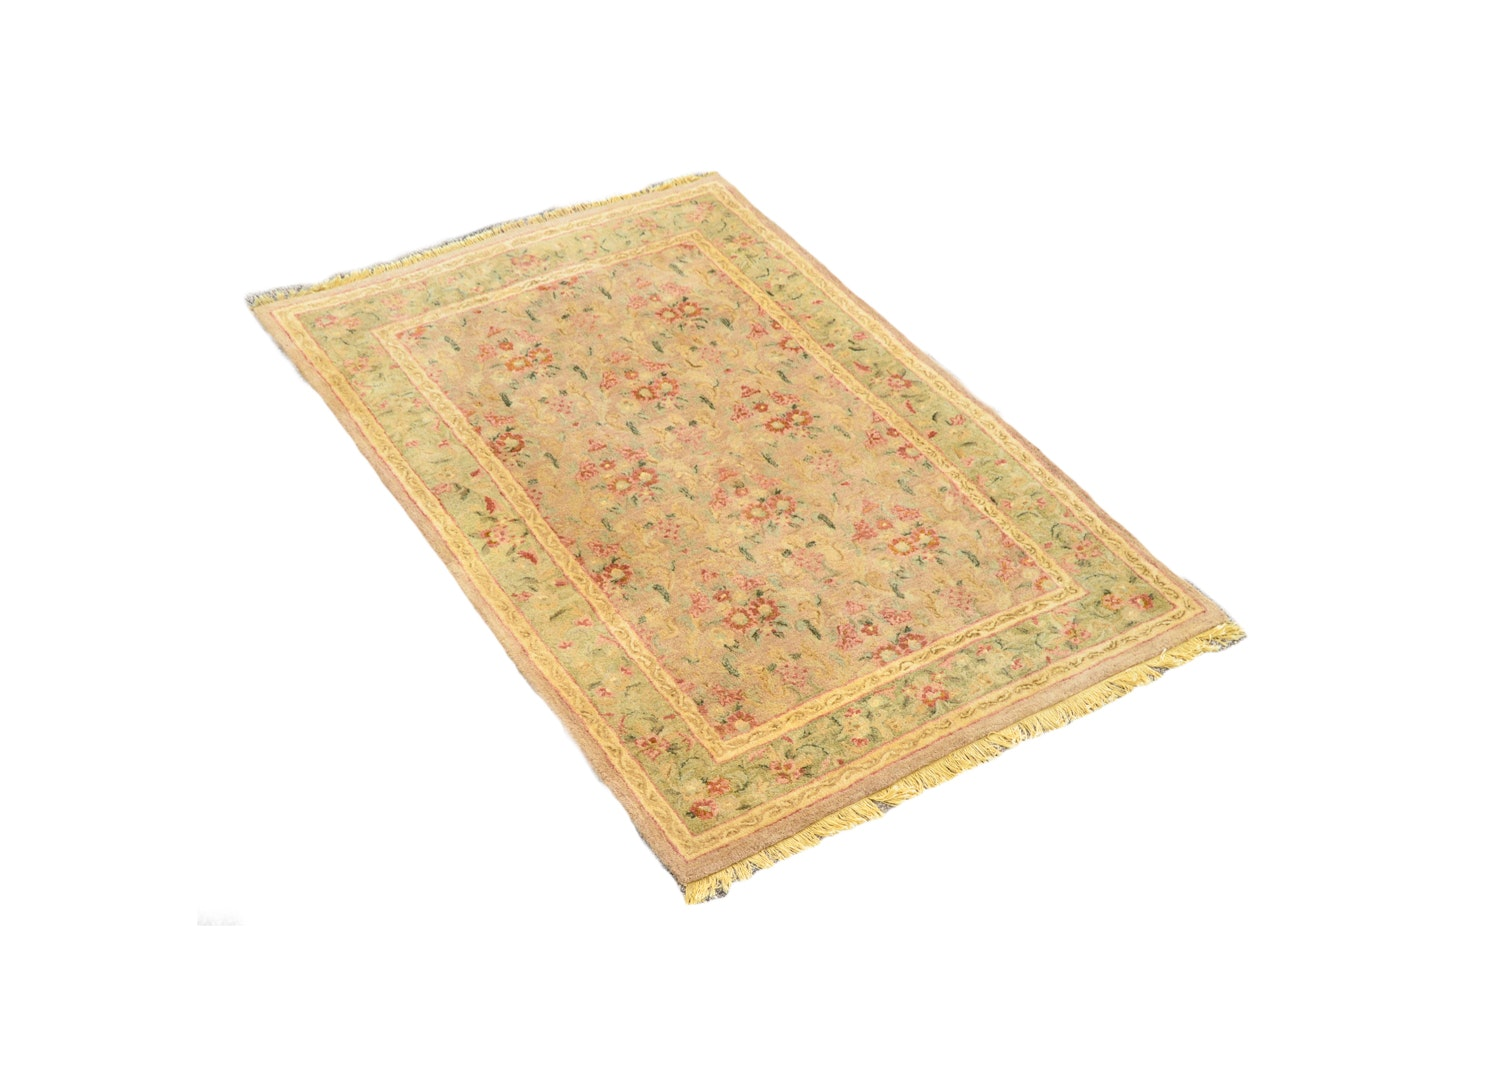 Hand Tufted Indian Floral Wool Area Rug